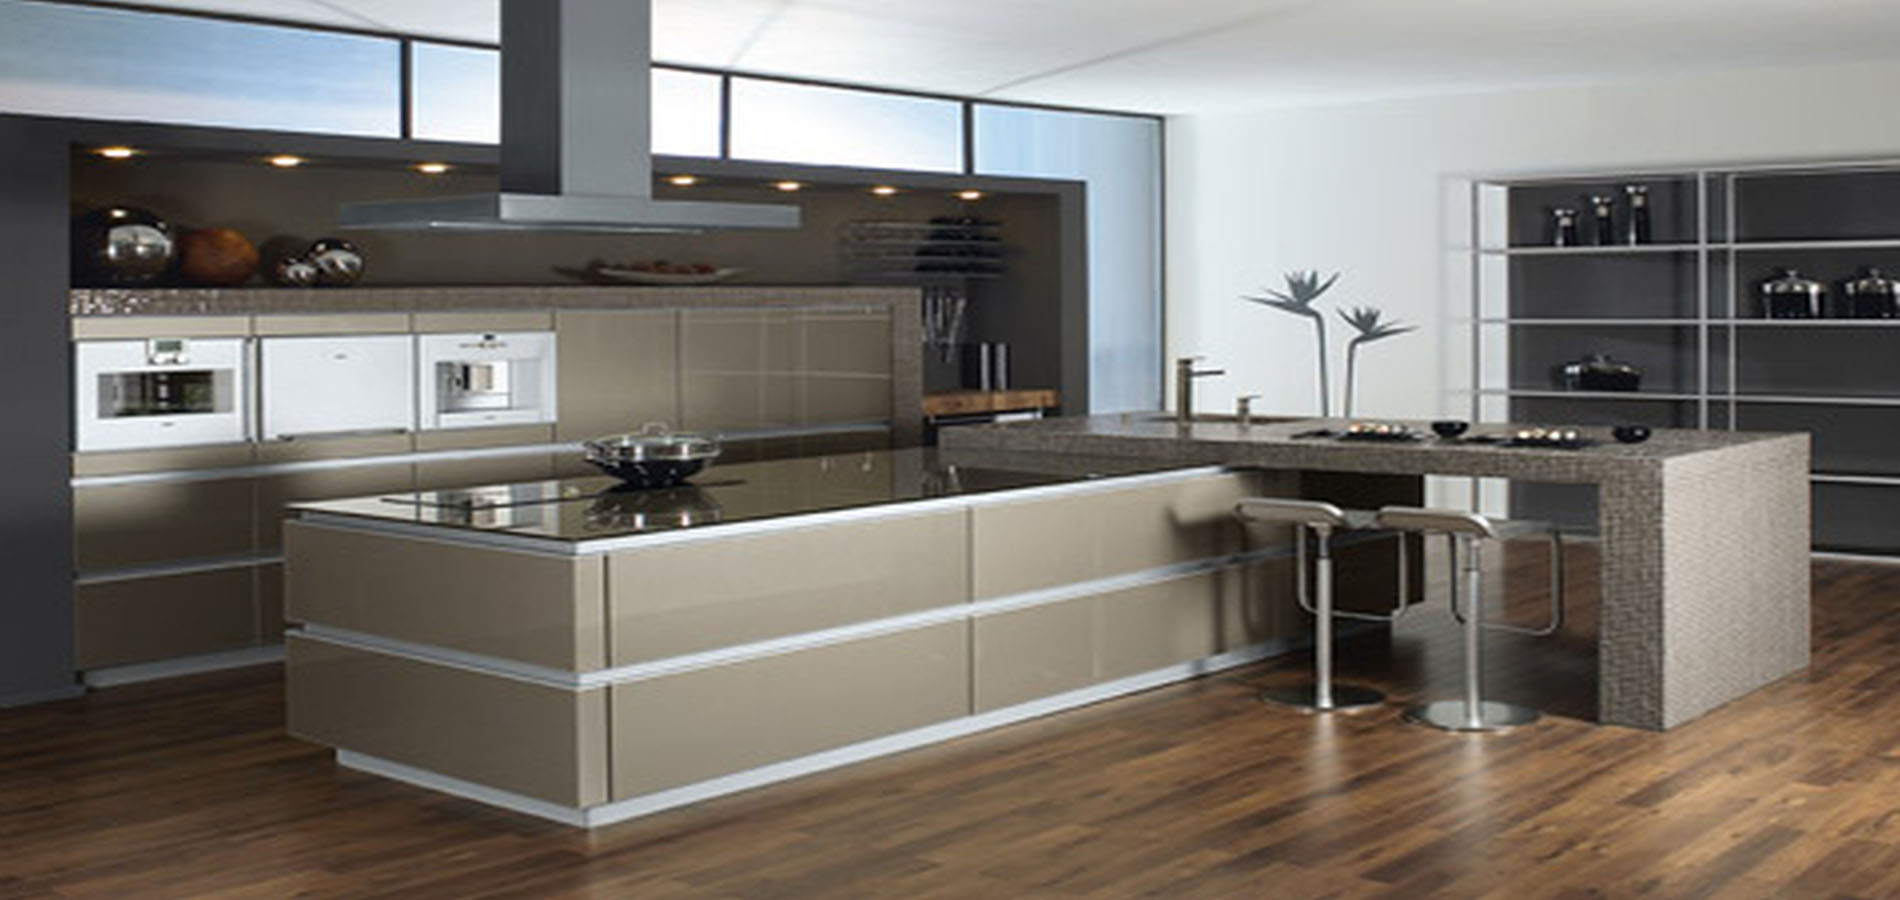 kitchen cabinet manufacturers list black stainless steel contemporary cabinets